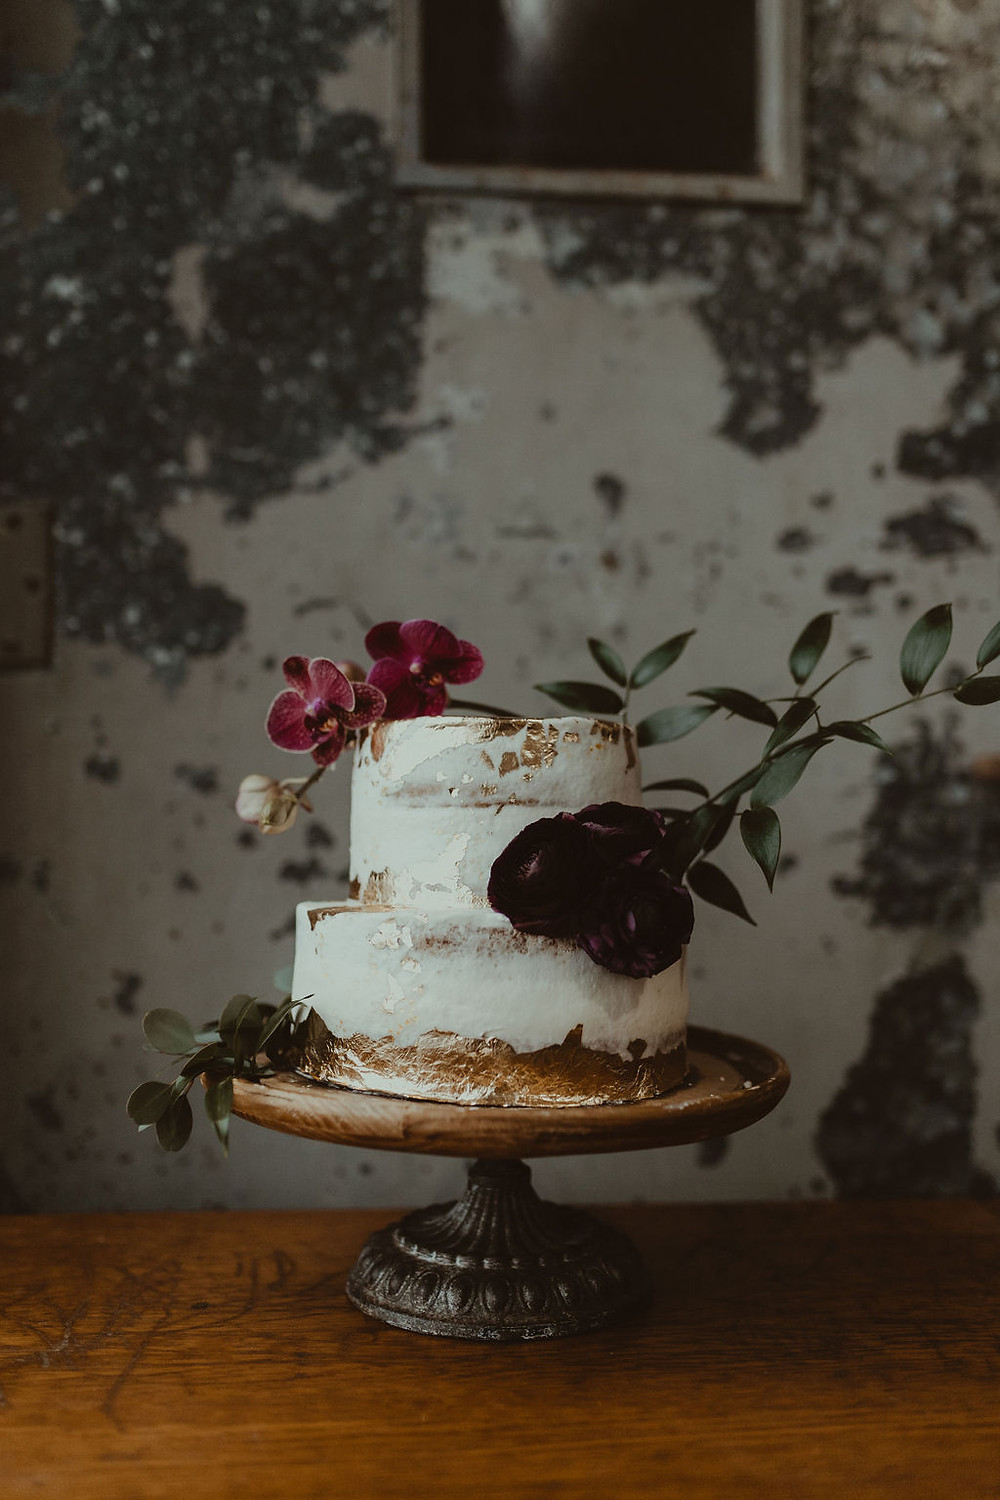 Wedding Cake on Wooden Cake Stand: Industrial & Copper Styled Wedding Shoot at Smith's Market featured on Pretty Little Vintage Co.